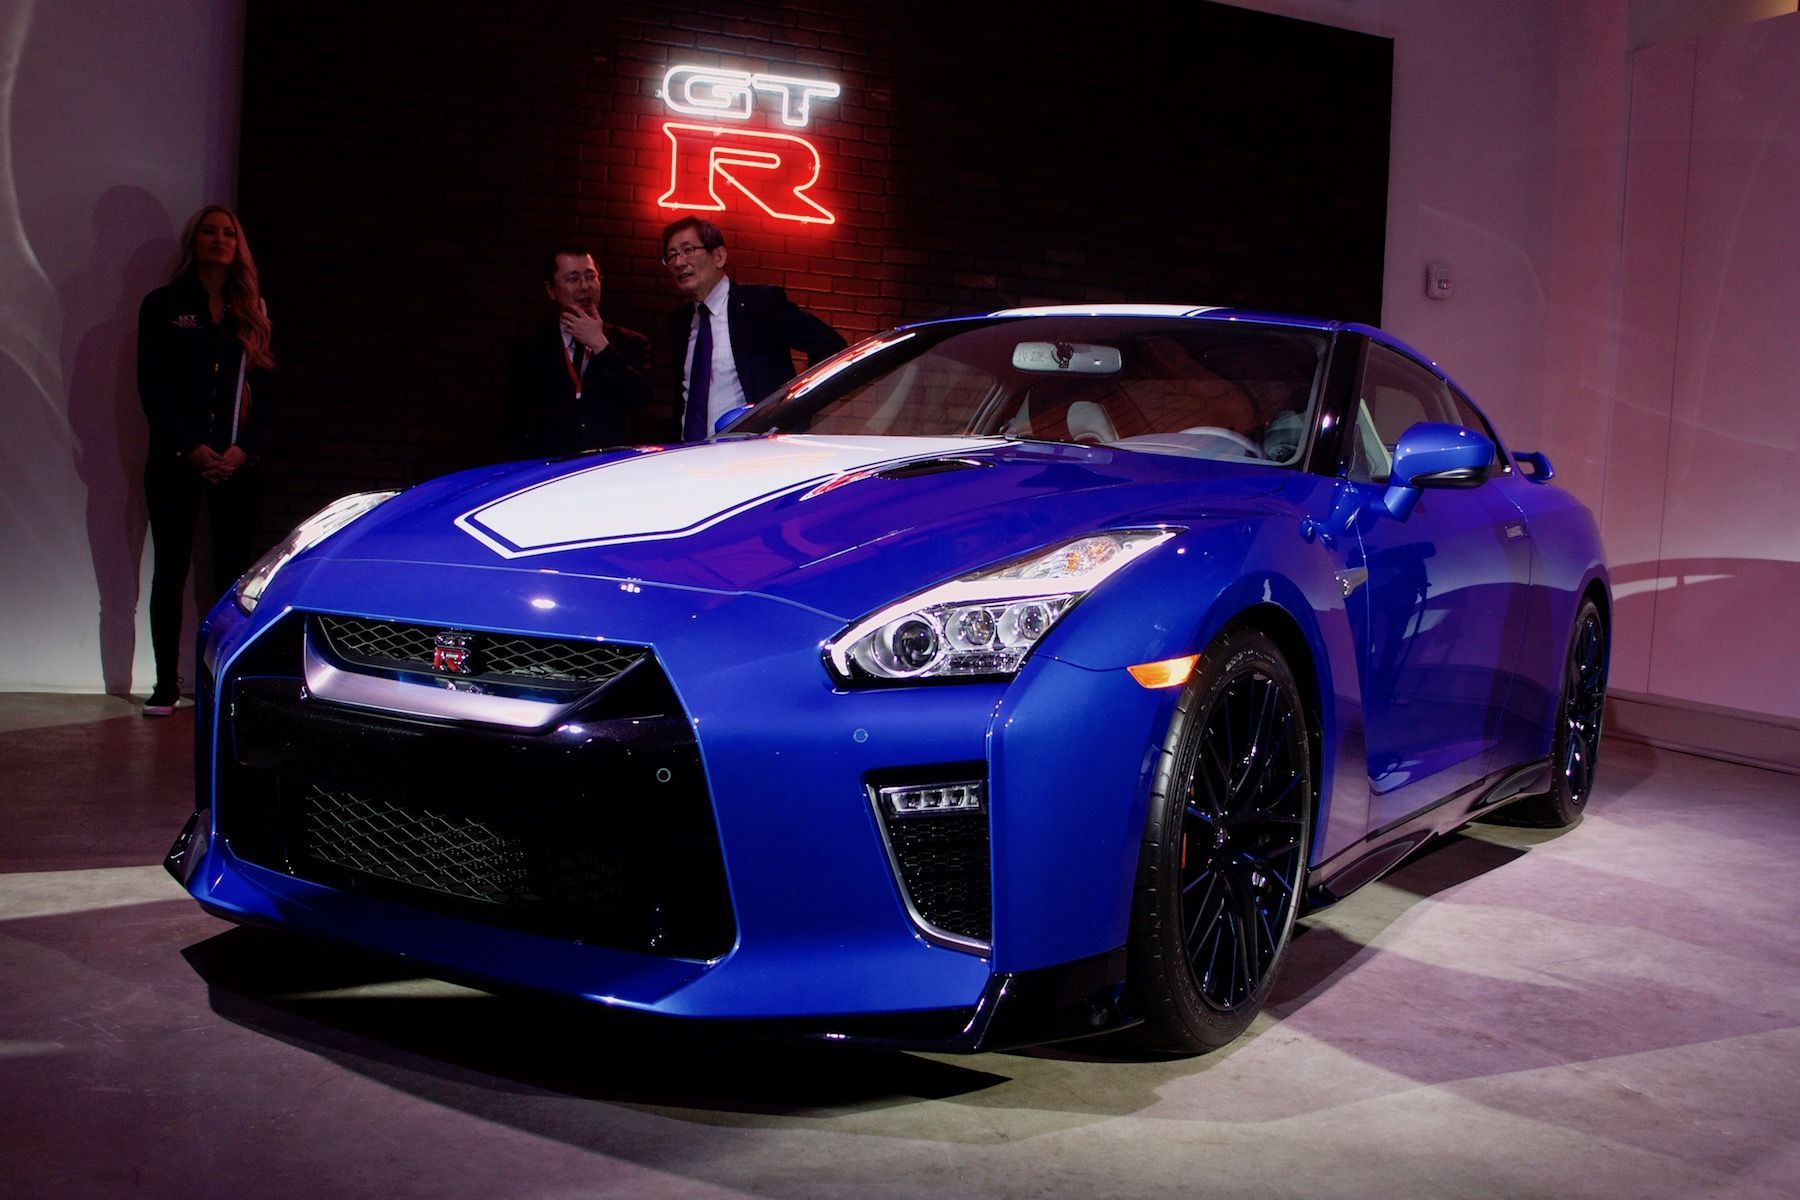 600hp Nissan GTR returns to Canada for 2020 model year